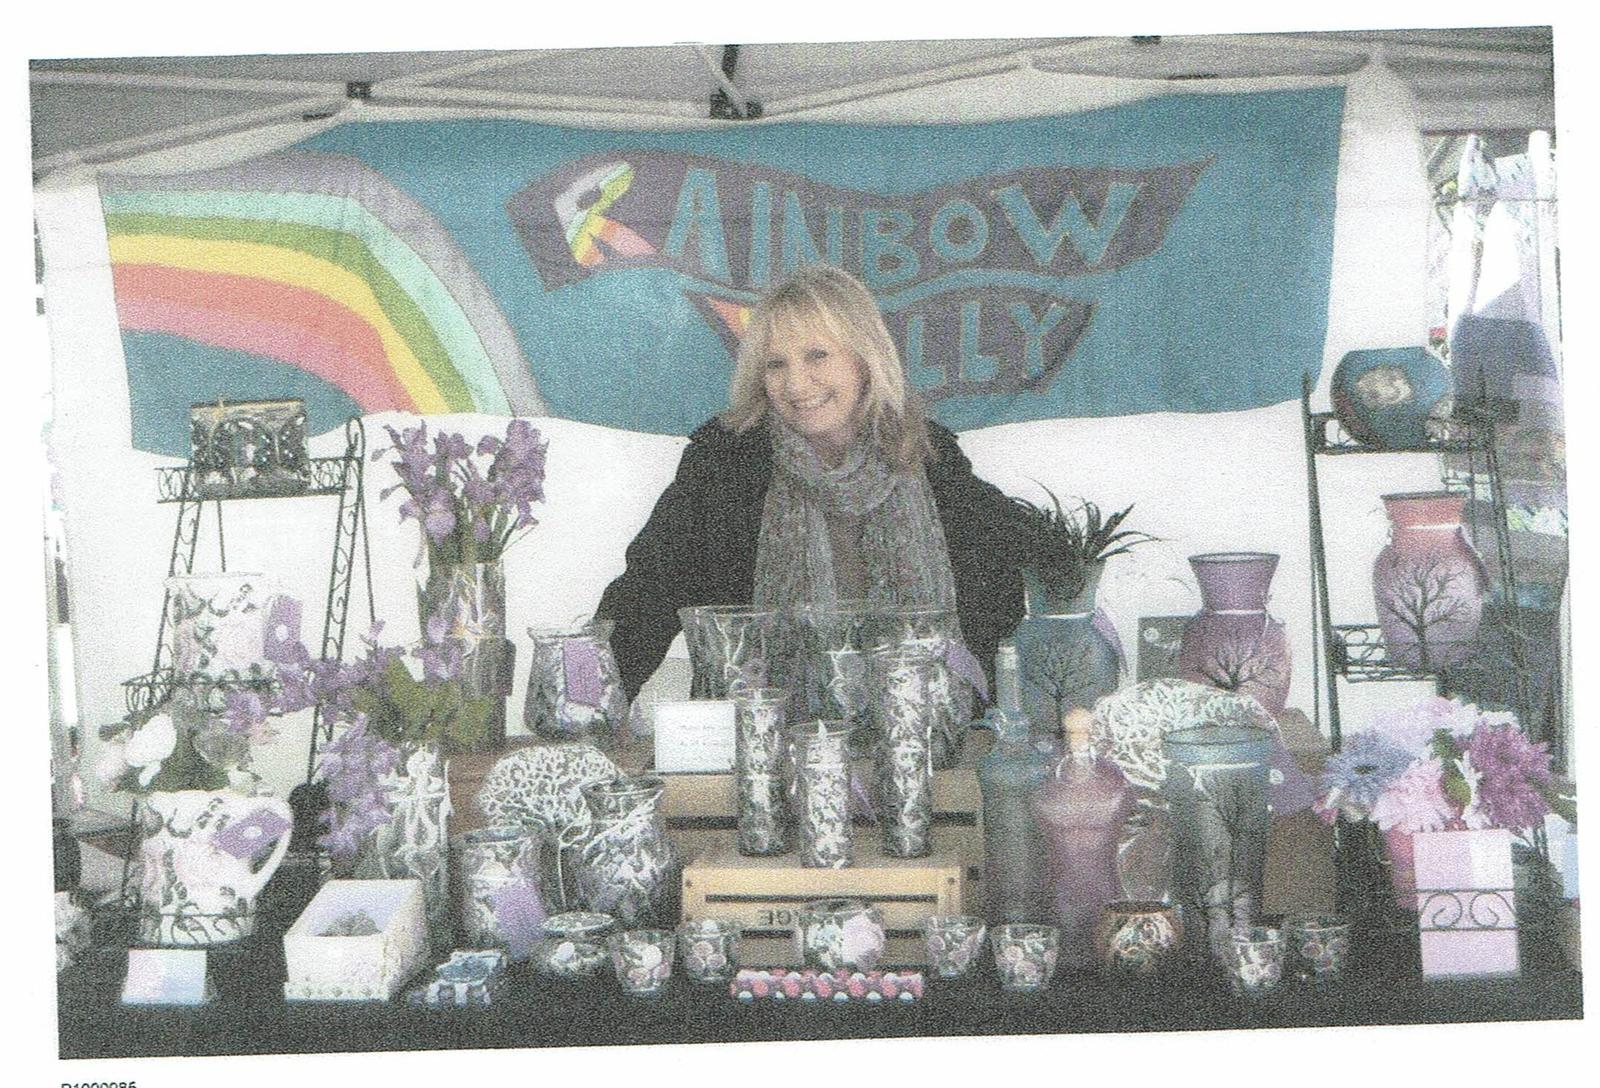 Rainbow Vally Designs stall picture